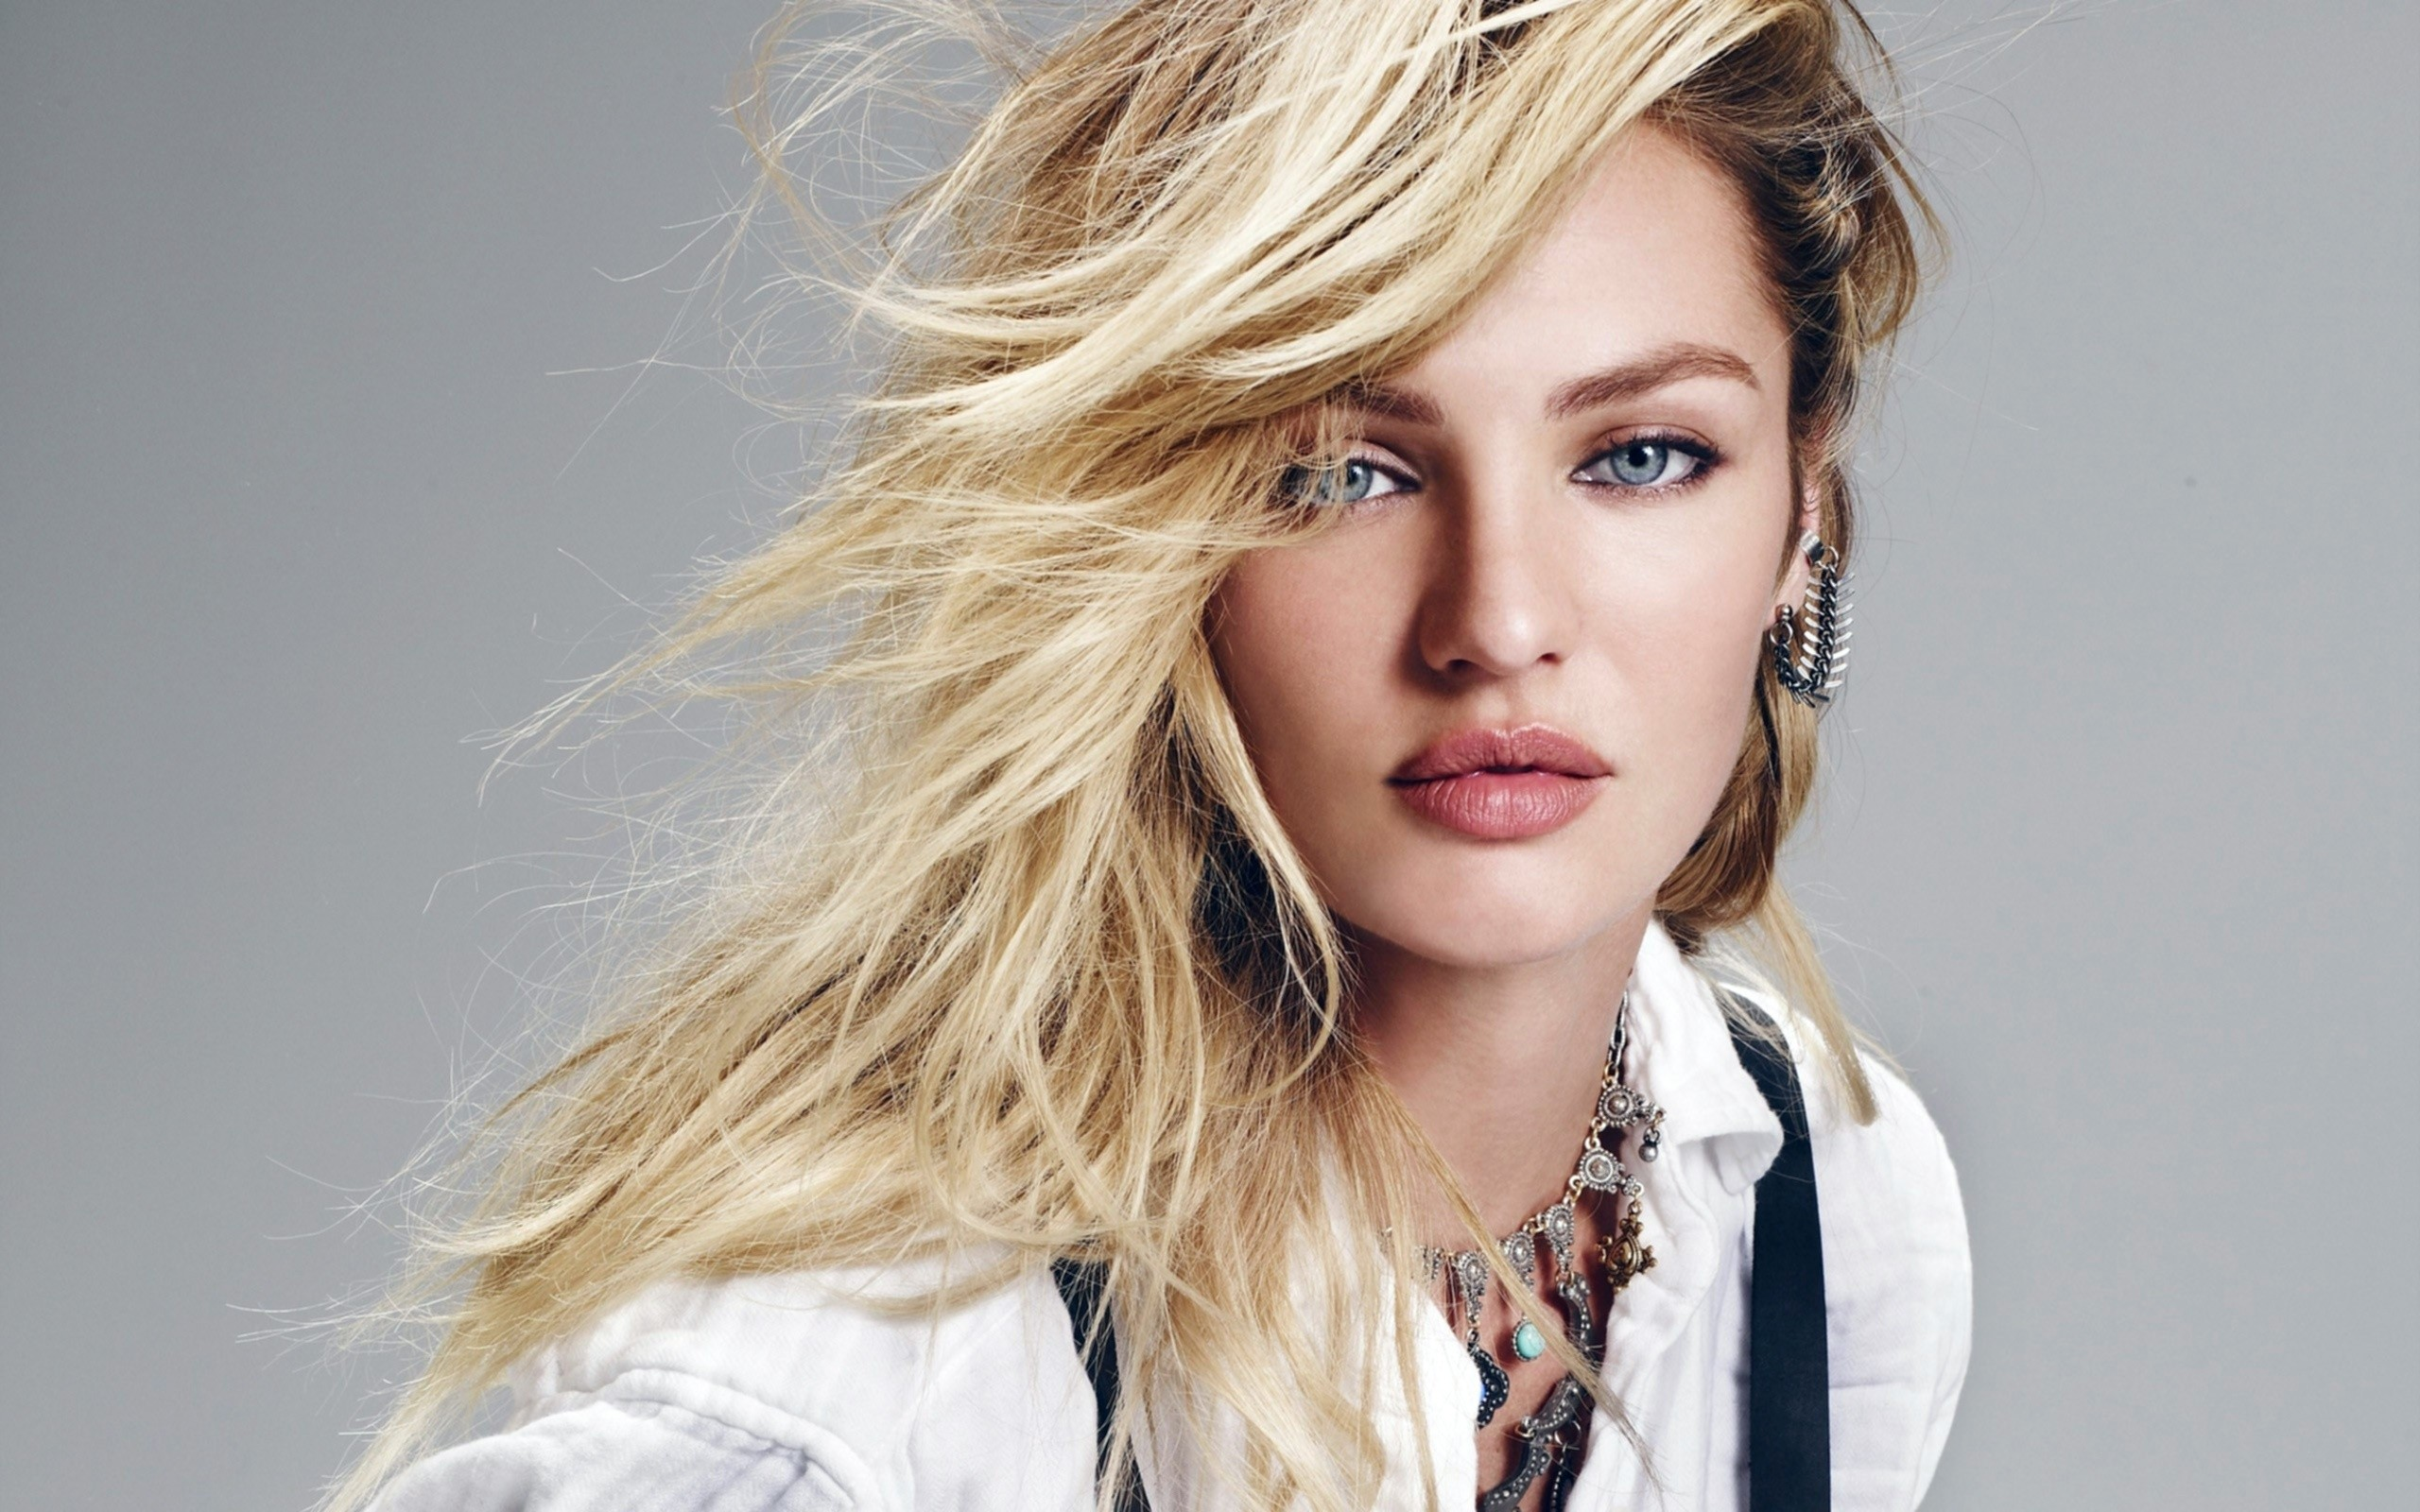 Model Candice Swanepoel Wide